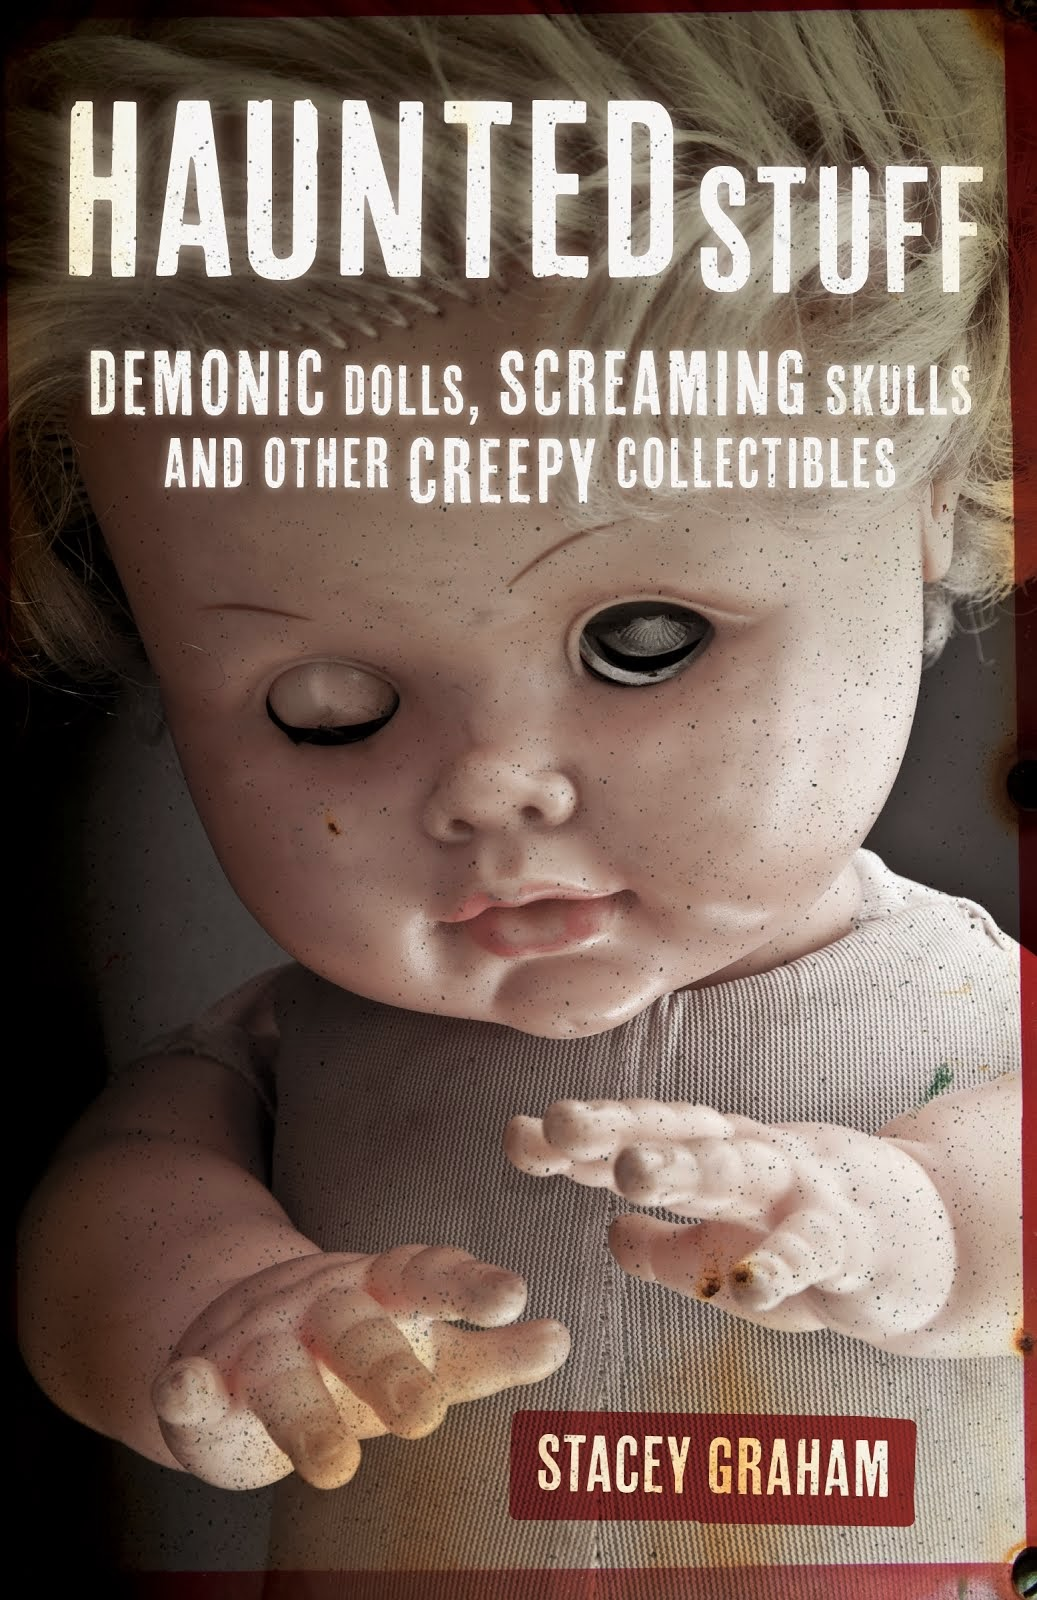 Haunted Stuff: Demonic Dolls, Screaming Skulls, and Other Creepy Collectibles